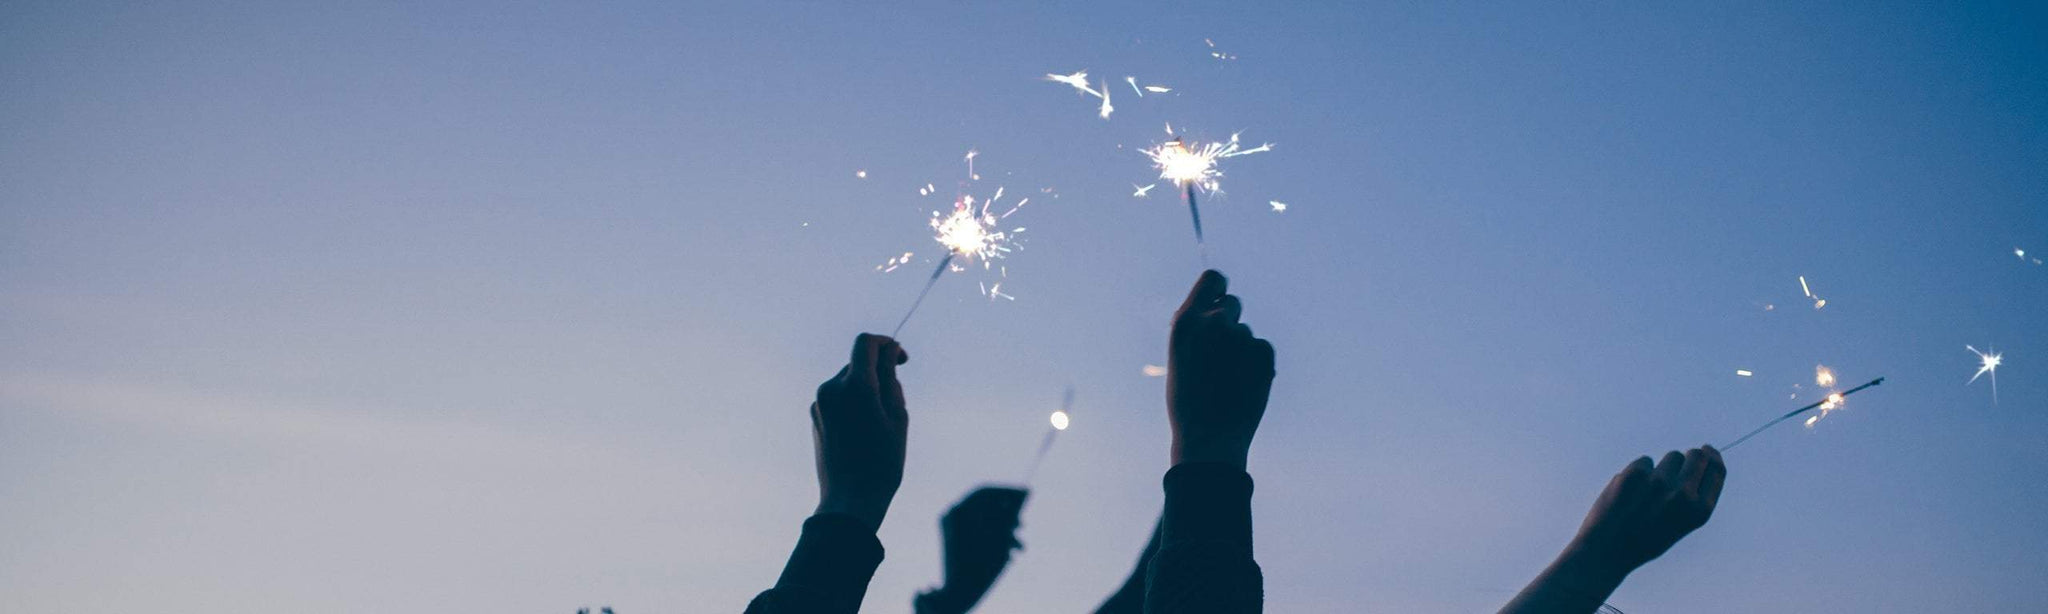 9 Healthy ways to embrace the New Year well